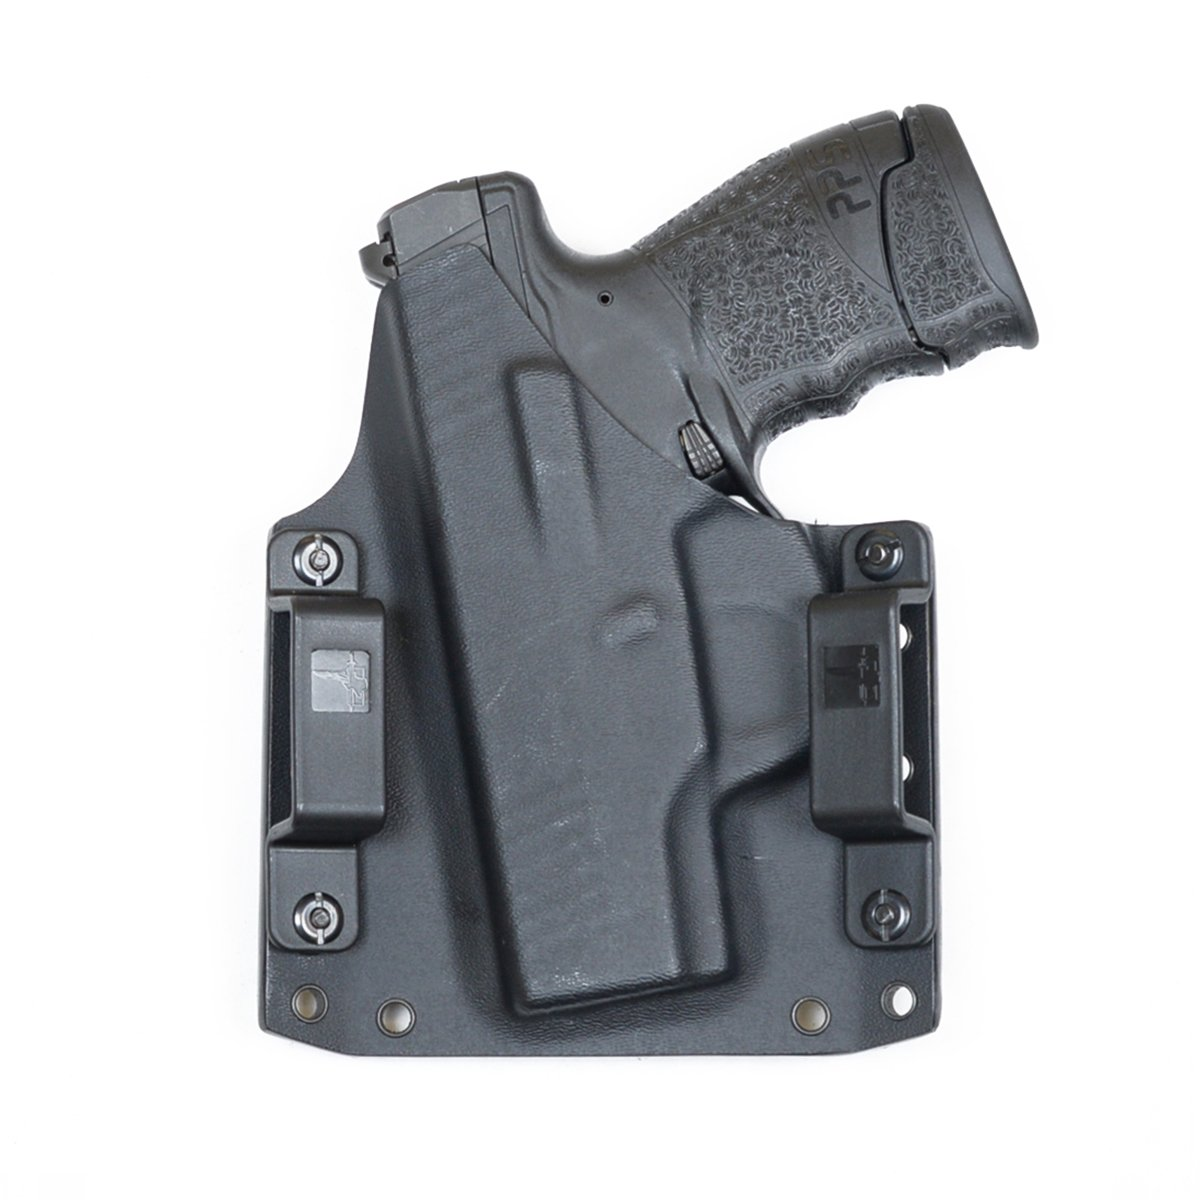 Walther PPS M2 OWB Kydex Gun Holster + Free Mag Pouch